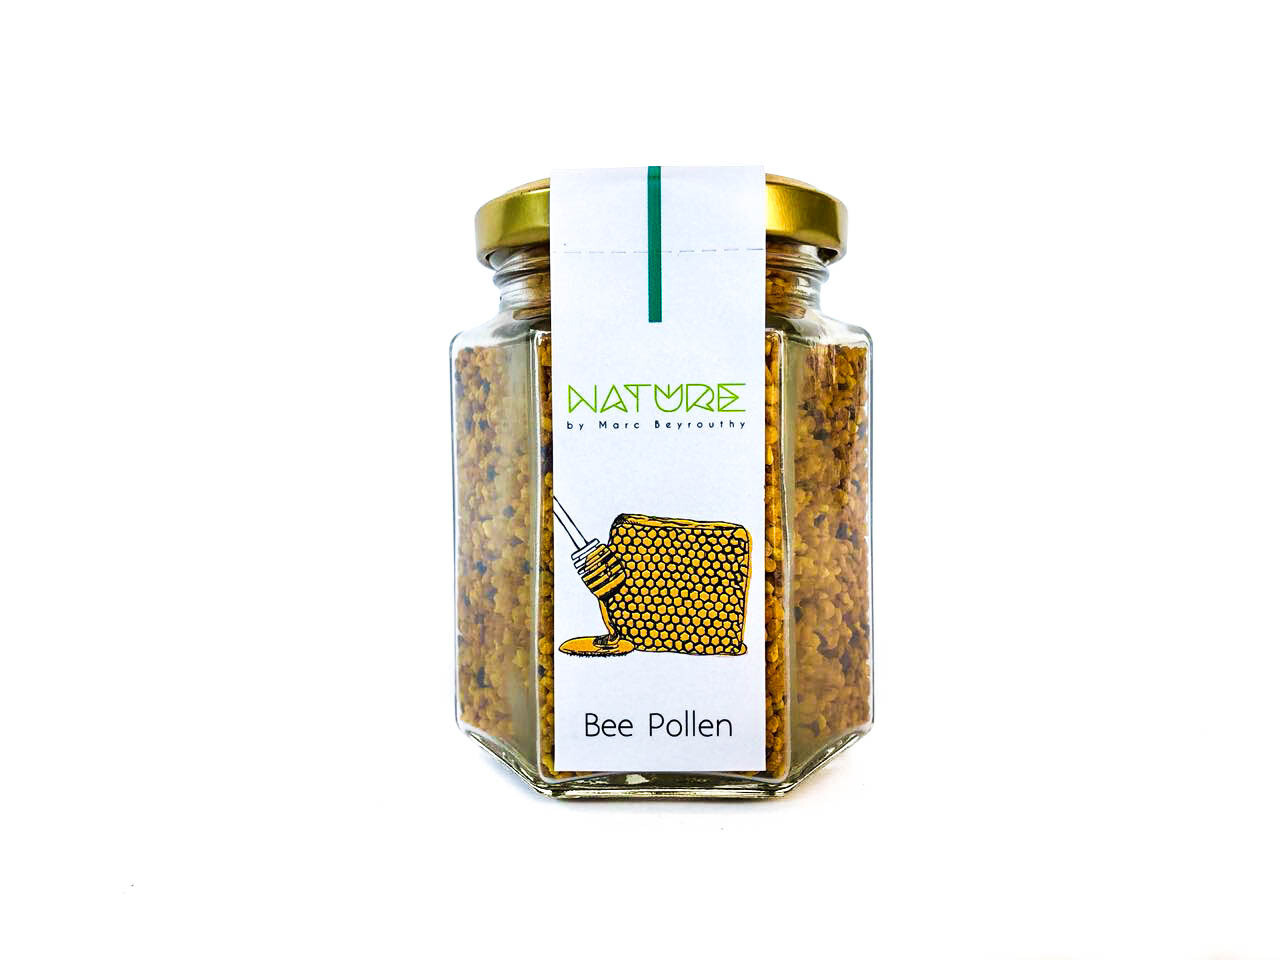 Bee Pollen لقاح النحل (Jar) - Nature by Marc Beyrouthy